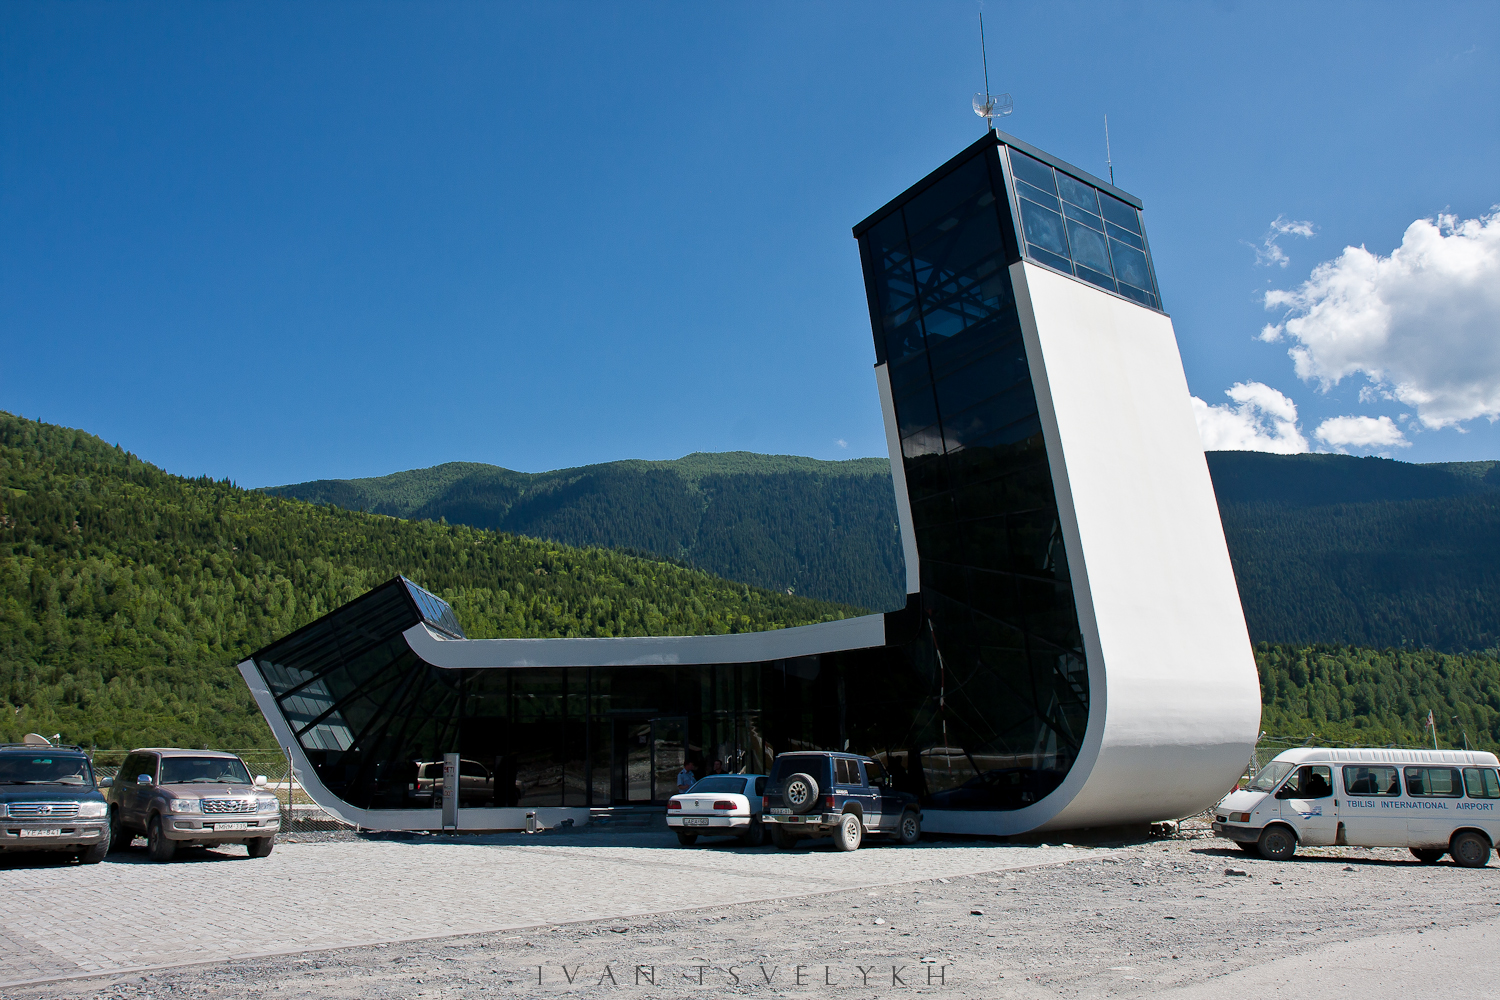 Very Good Challenge For Scenery Makers - 10 most beautiful airports in the world